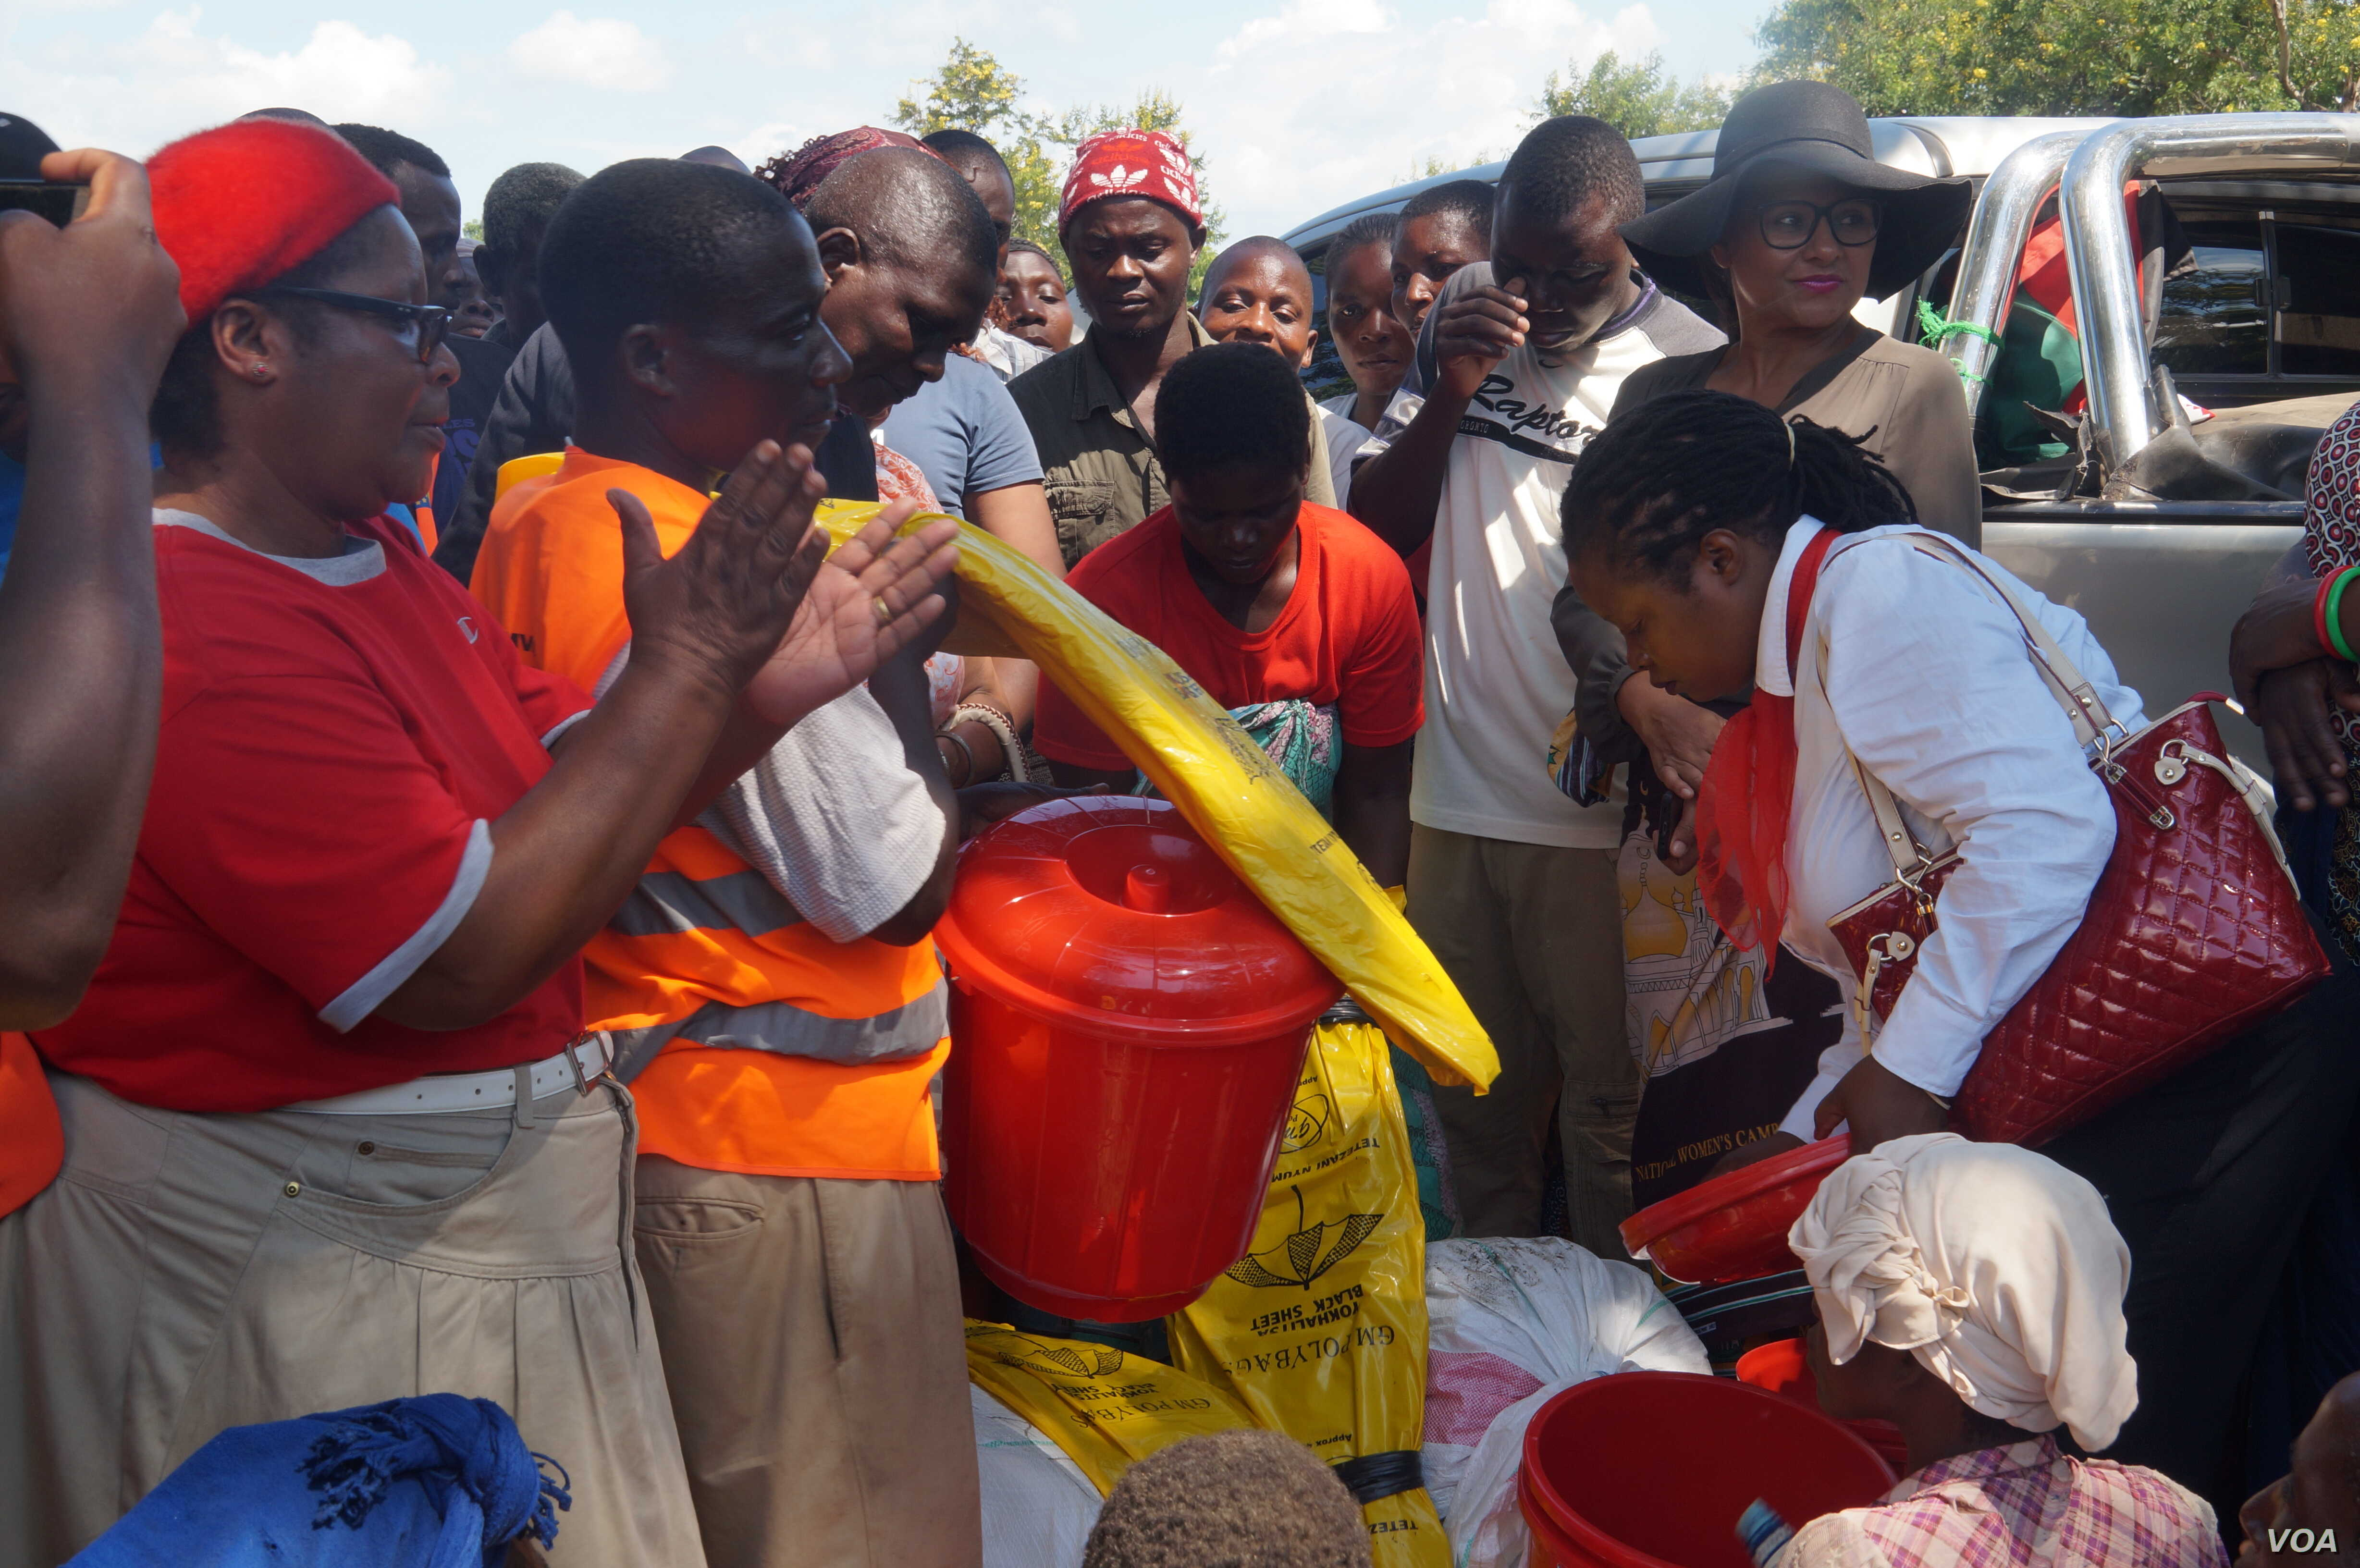 Due to erratic donor aid, local well-wishers are coming in to help flood victims with whatever they can provide. (L. Mesina for VOA)